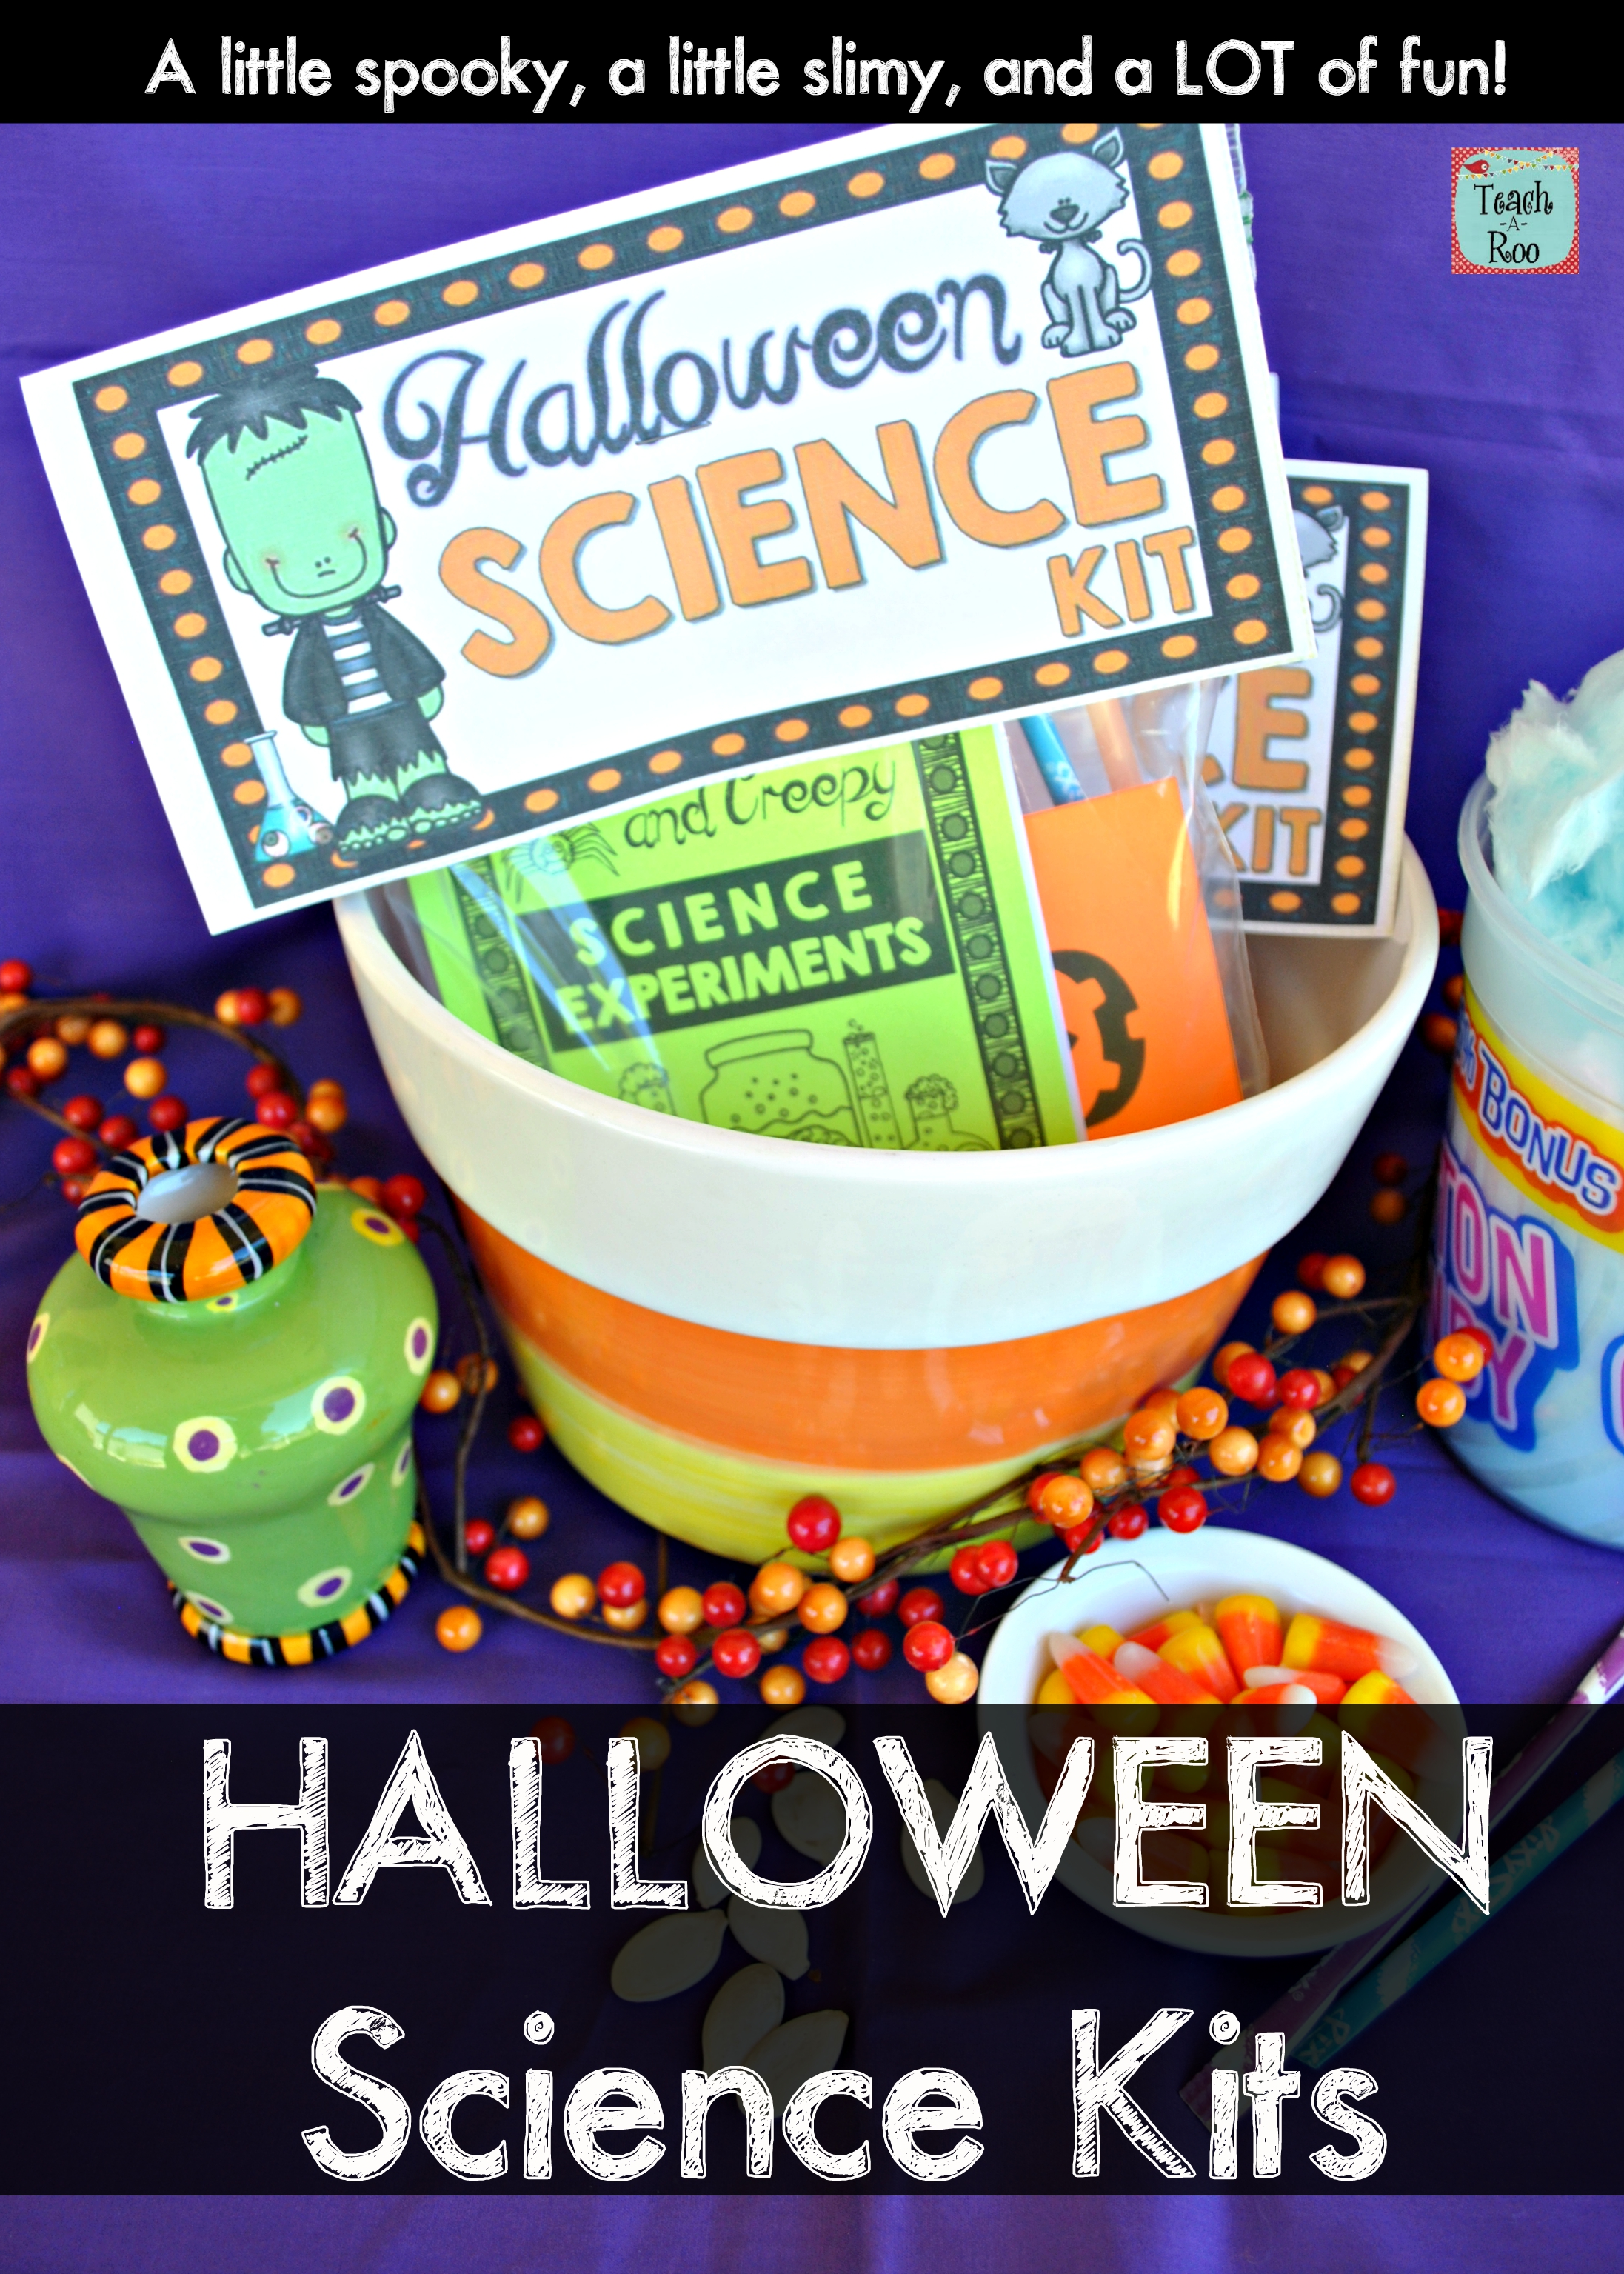 Halloween Science- Kits